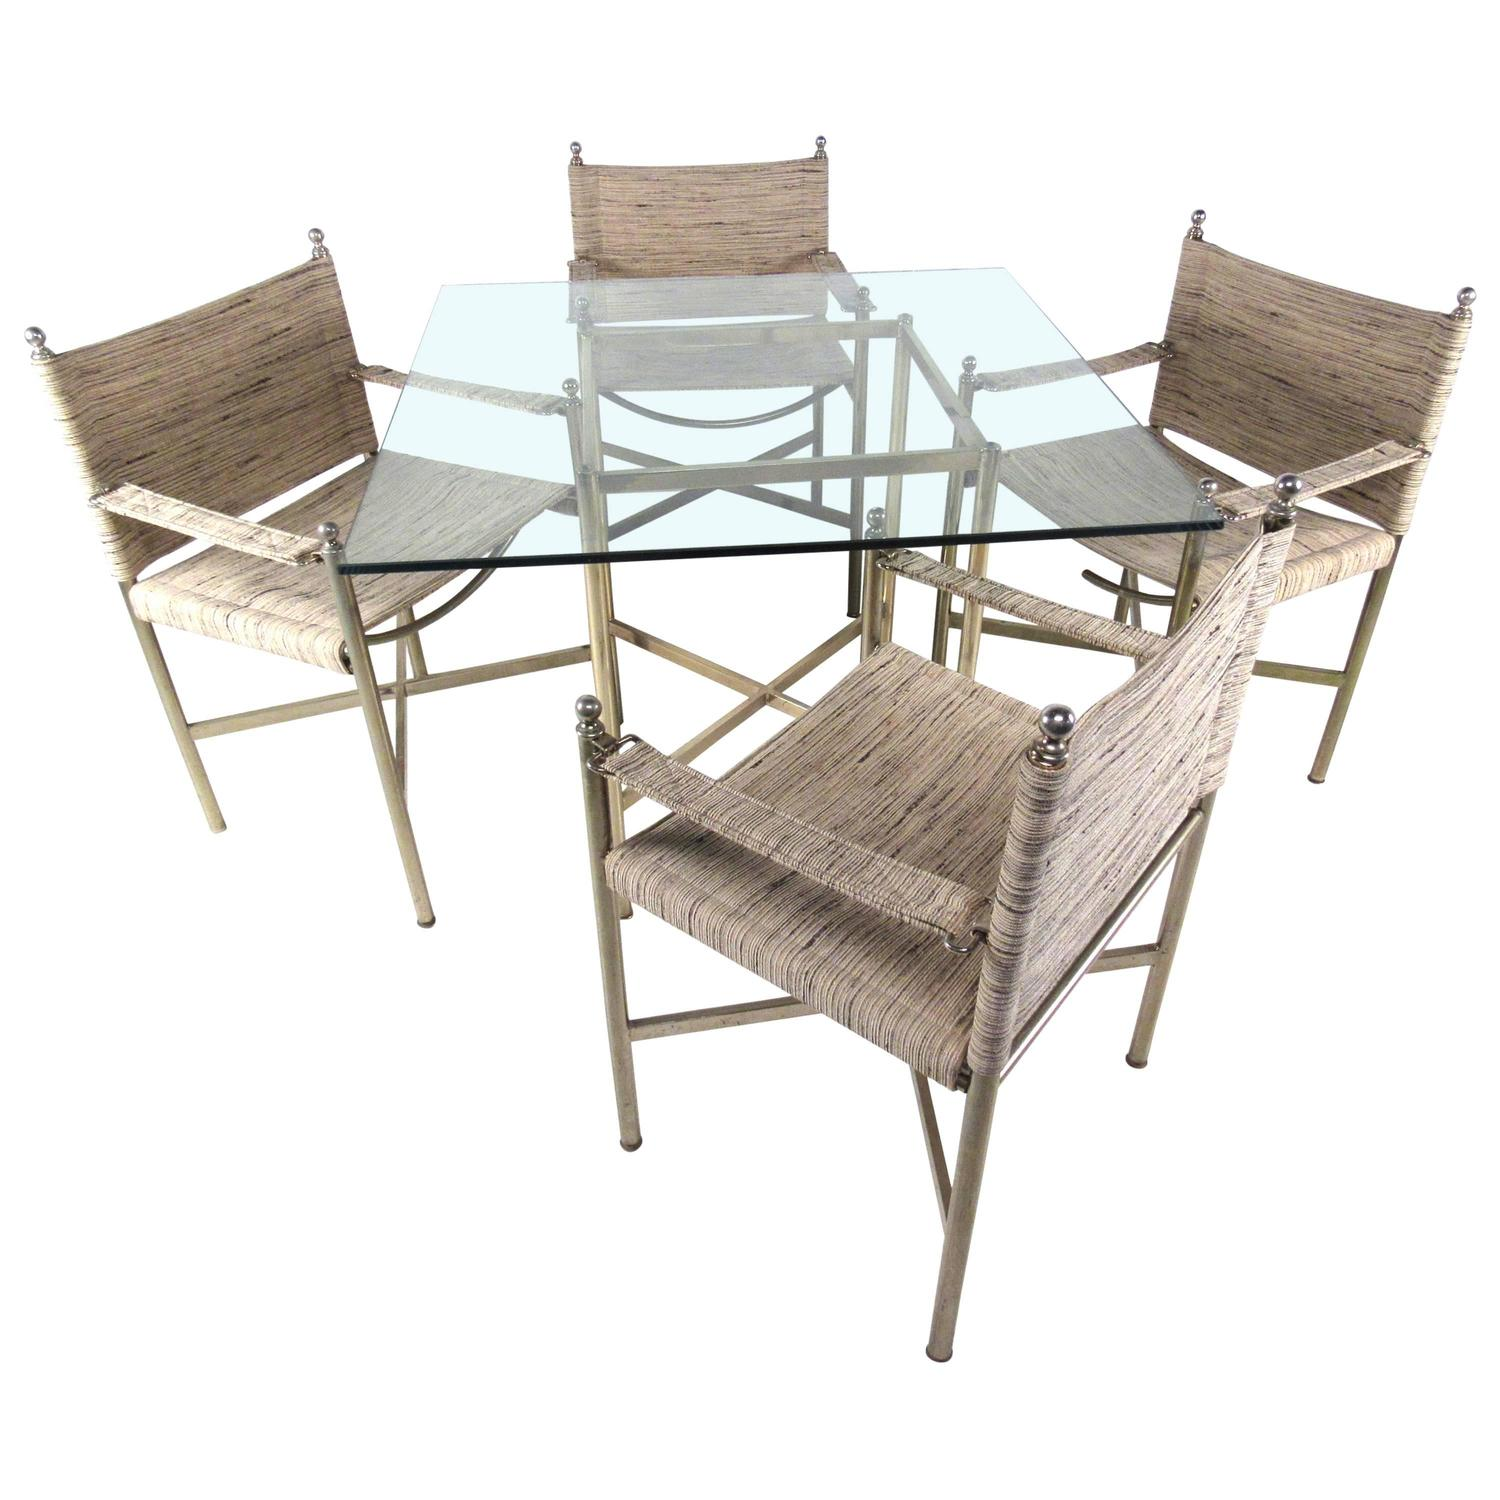 Modern Dining Table Sets On Sale: Mid-Century Modern Dining Table With Four Chairs For Sale